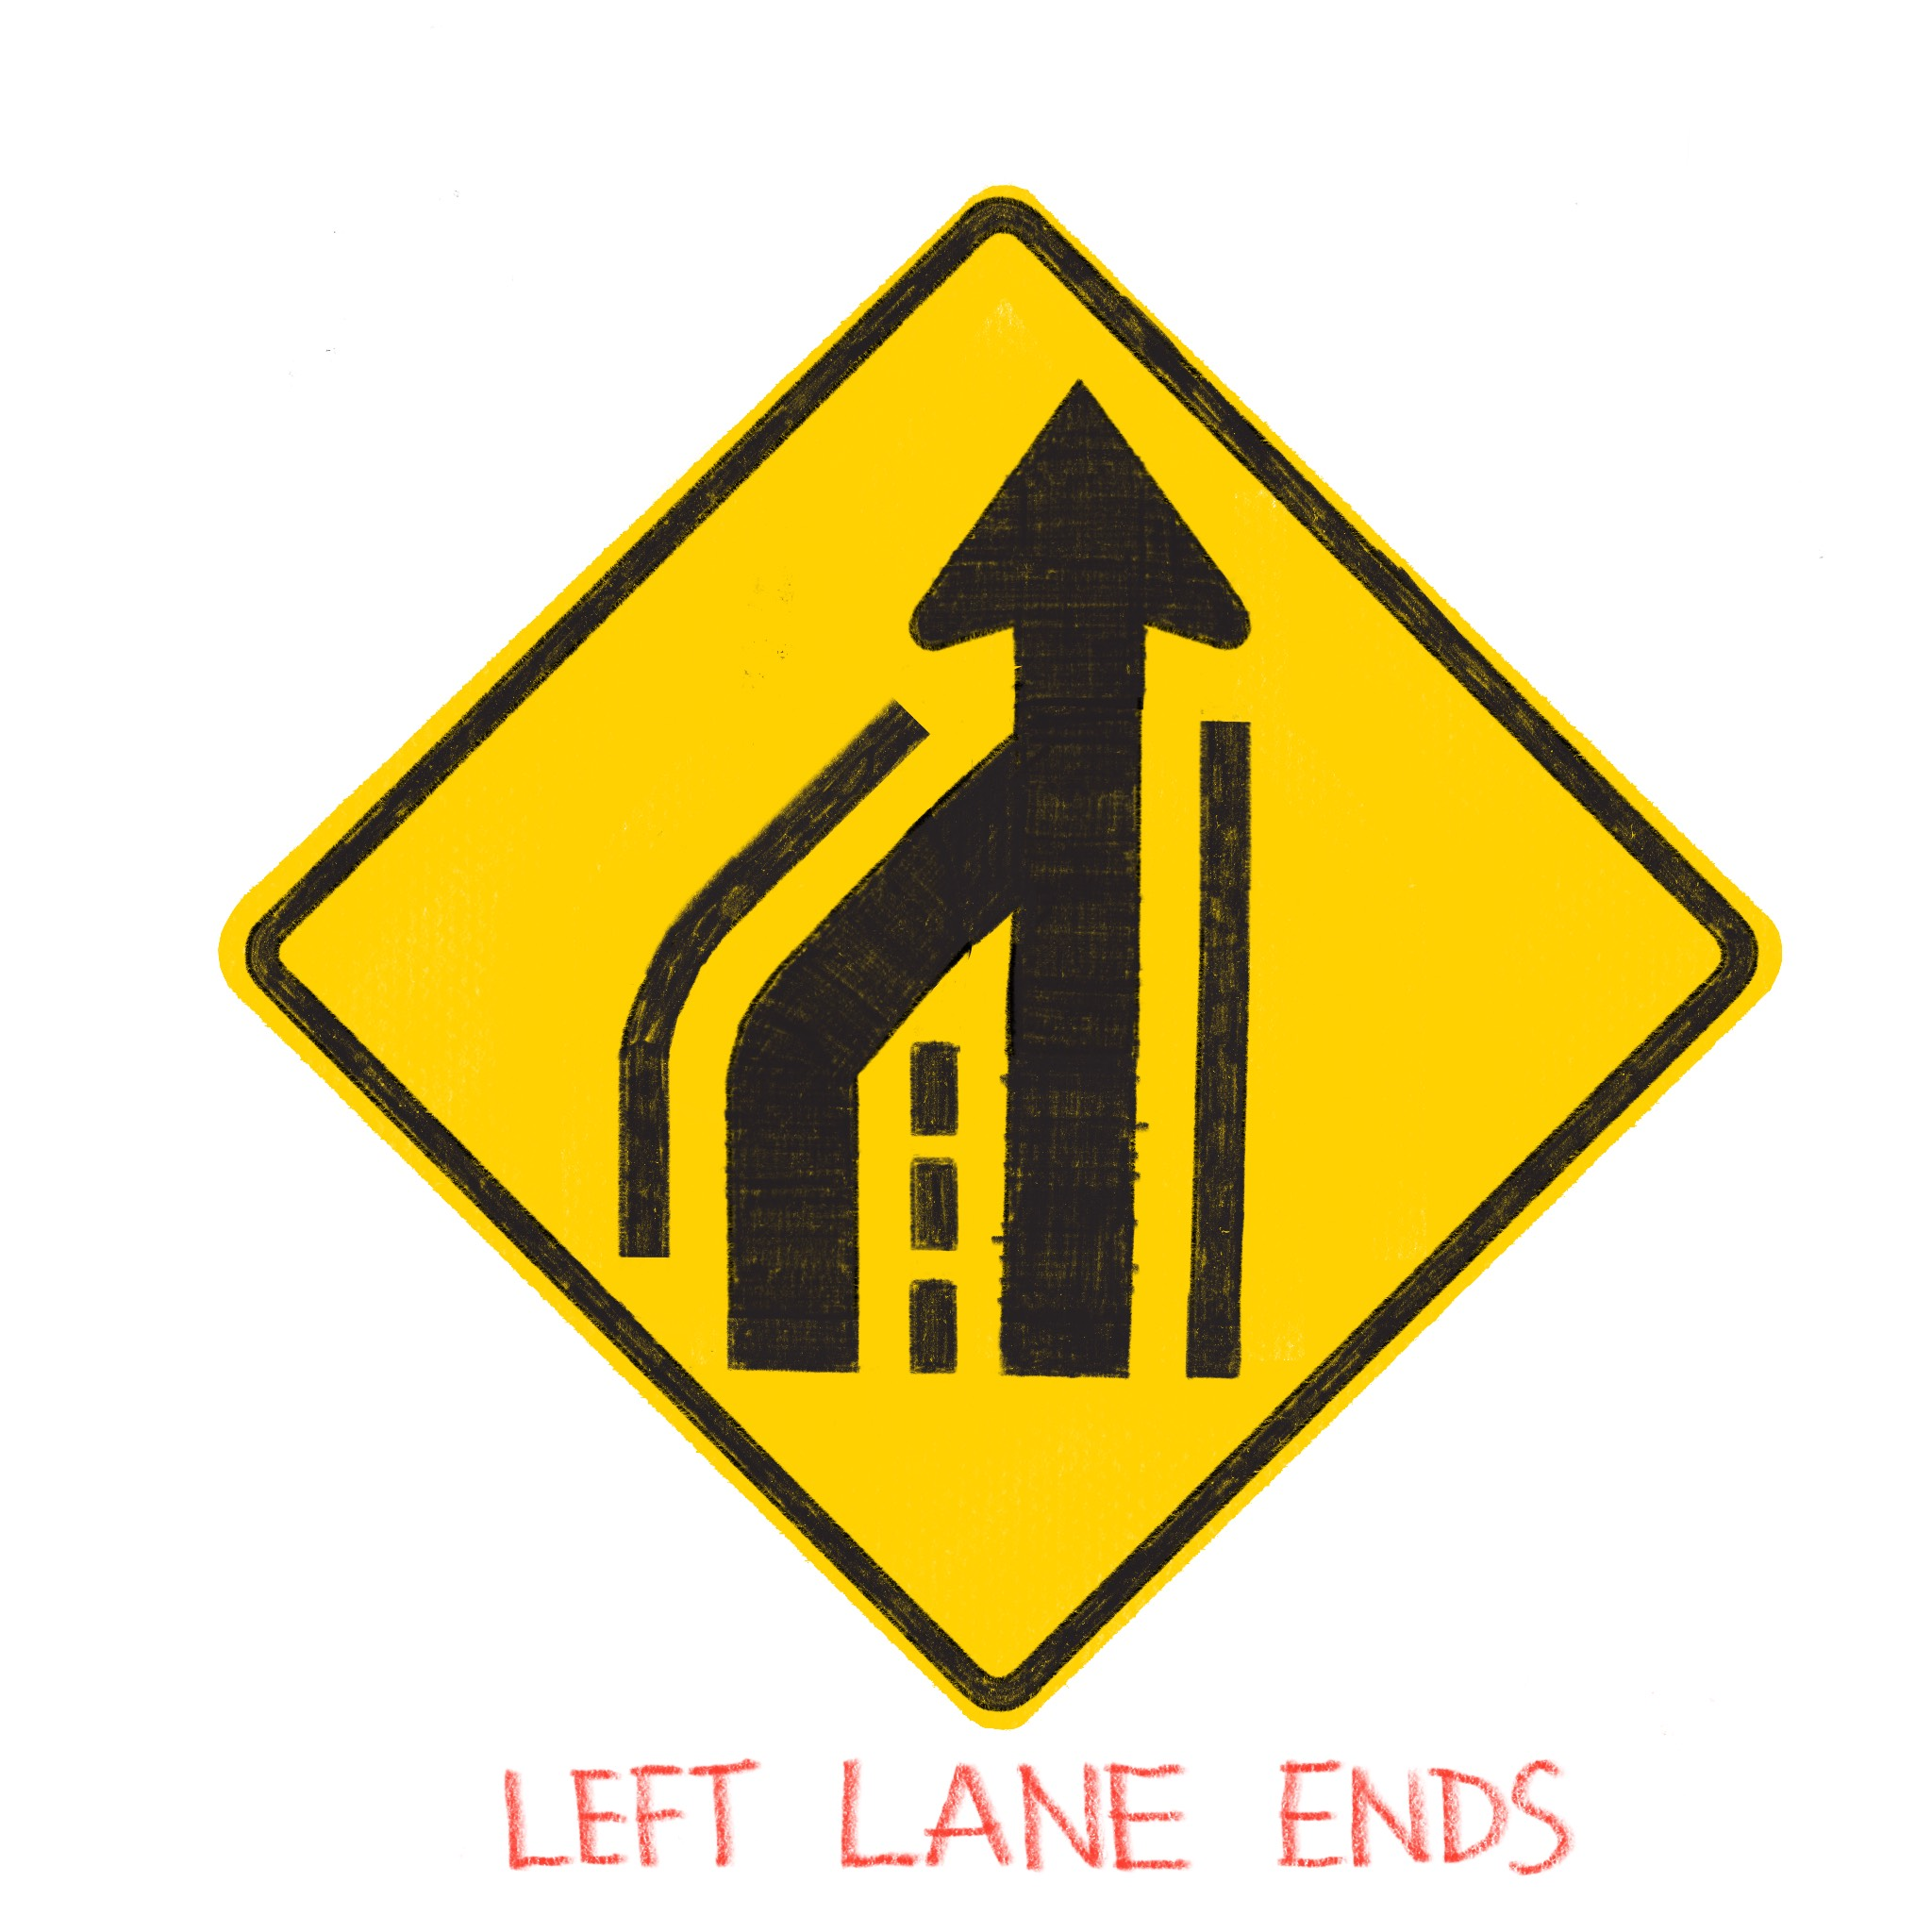 lane ends merge right 10 more redesign ideas for the